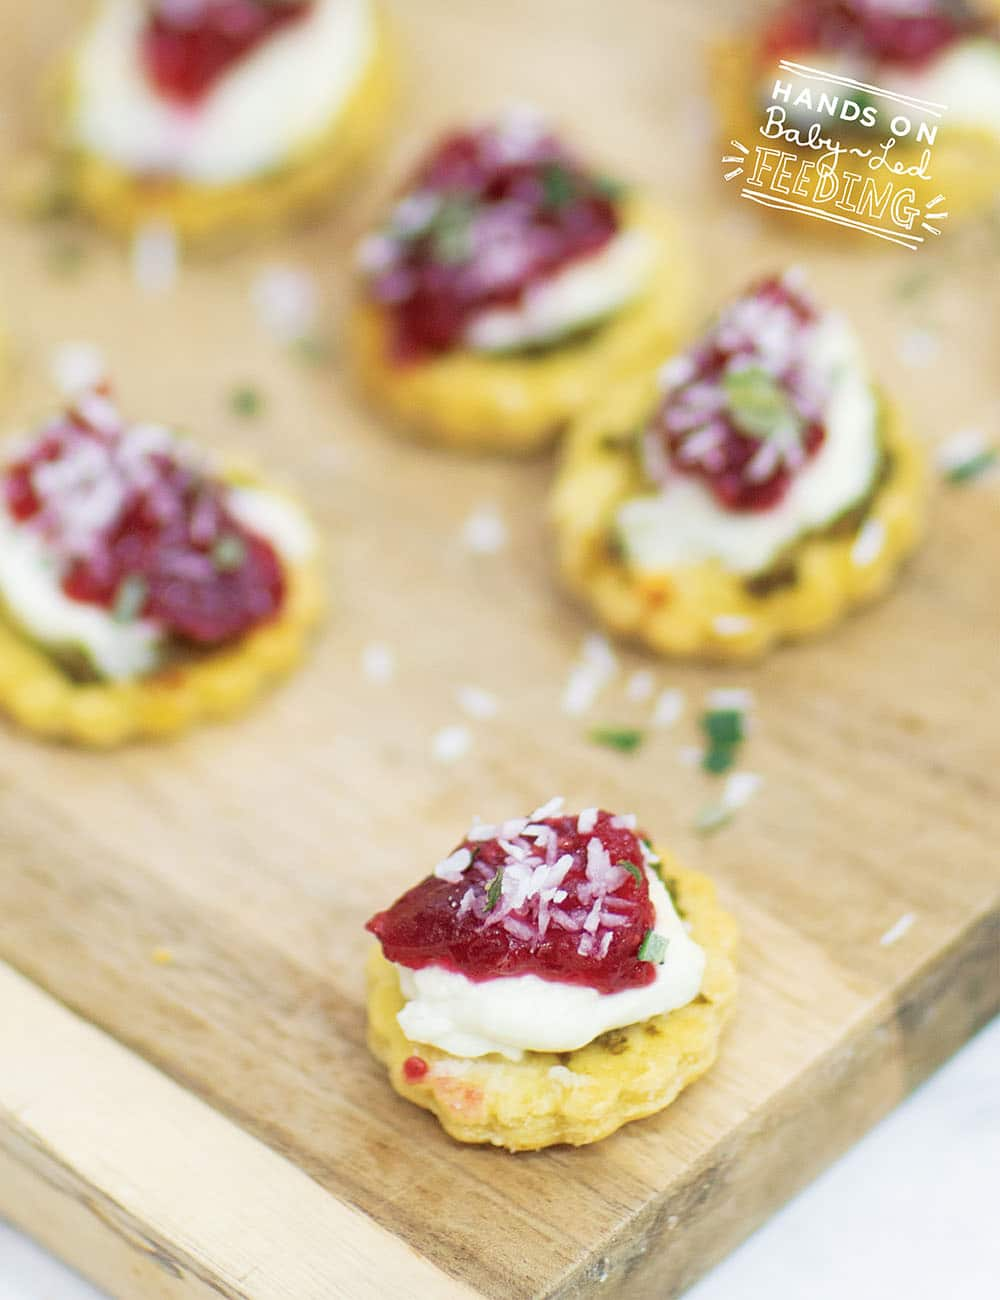 Healthy Christmas Appetizers are not always easy to find... But here is a fresh and super easy appetizer that is safe for babies and toddlers too! Goat cheese, cranberries, pesto and coconut all on top of a fresh baked crust. Merry Christmas! #appetizer #christmasrecipe #babyledweaning